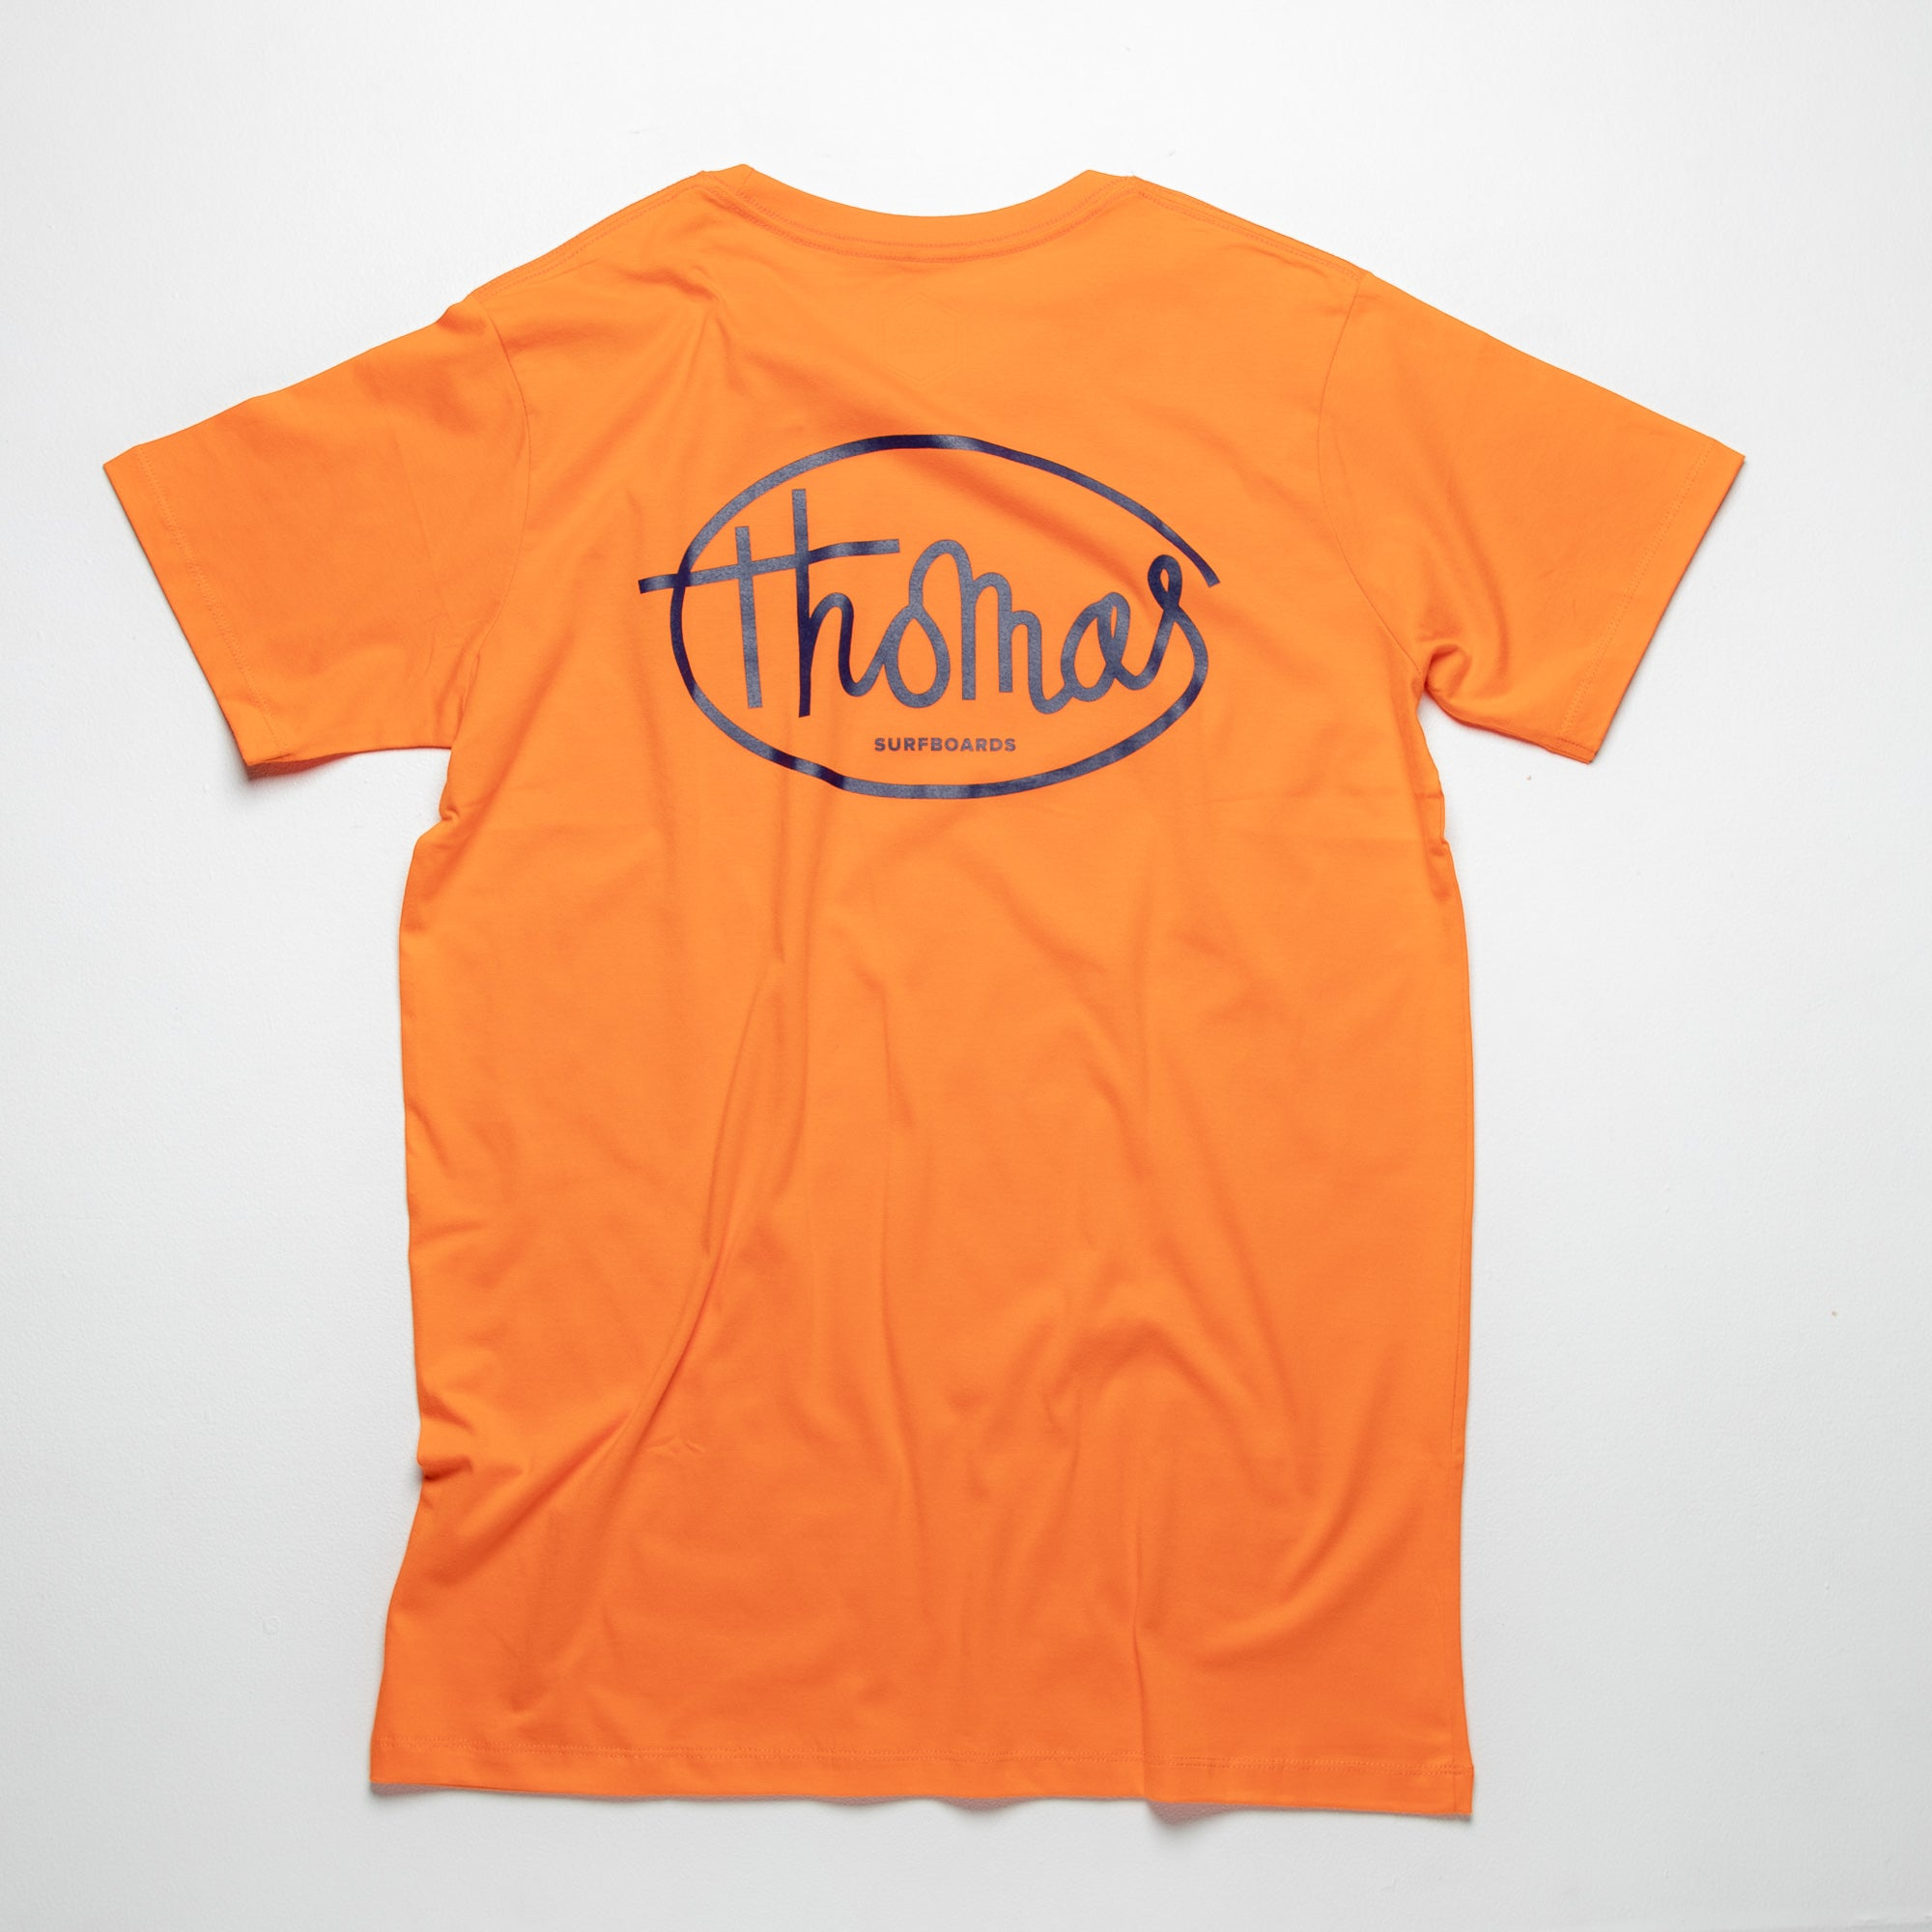 Thomas x McNeil T-Shirt Orange